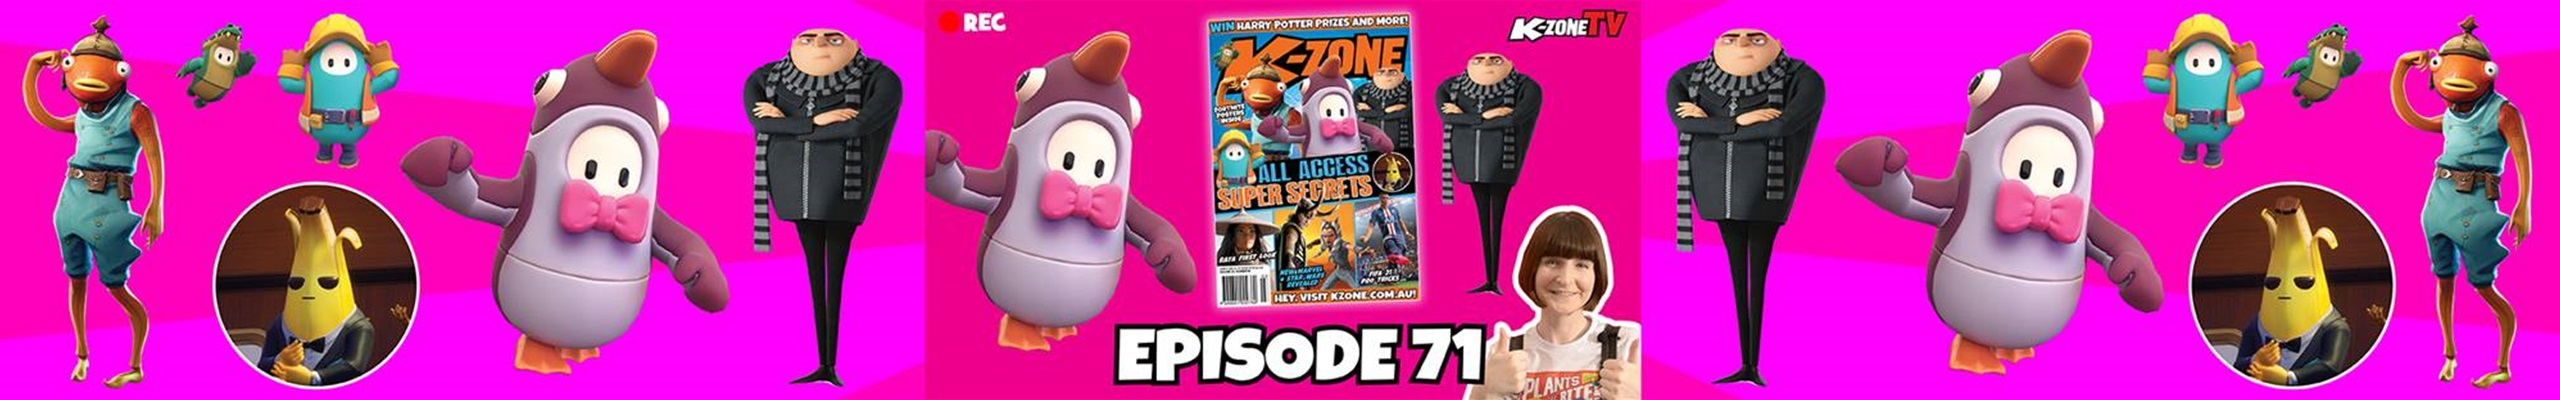 K-Zone TV Episode 71: All Access Super Secrets